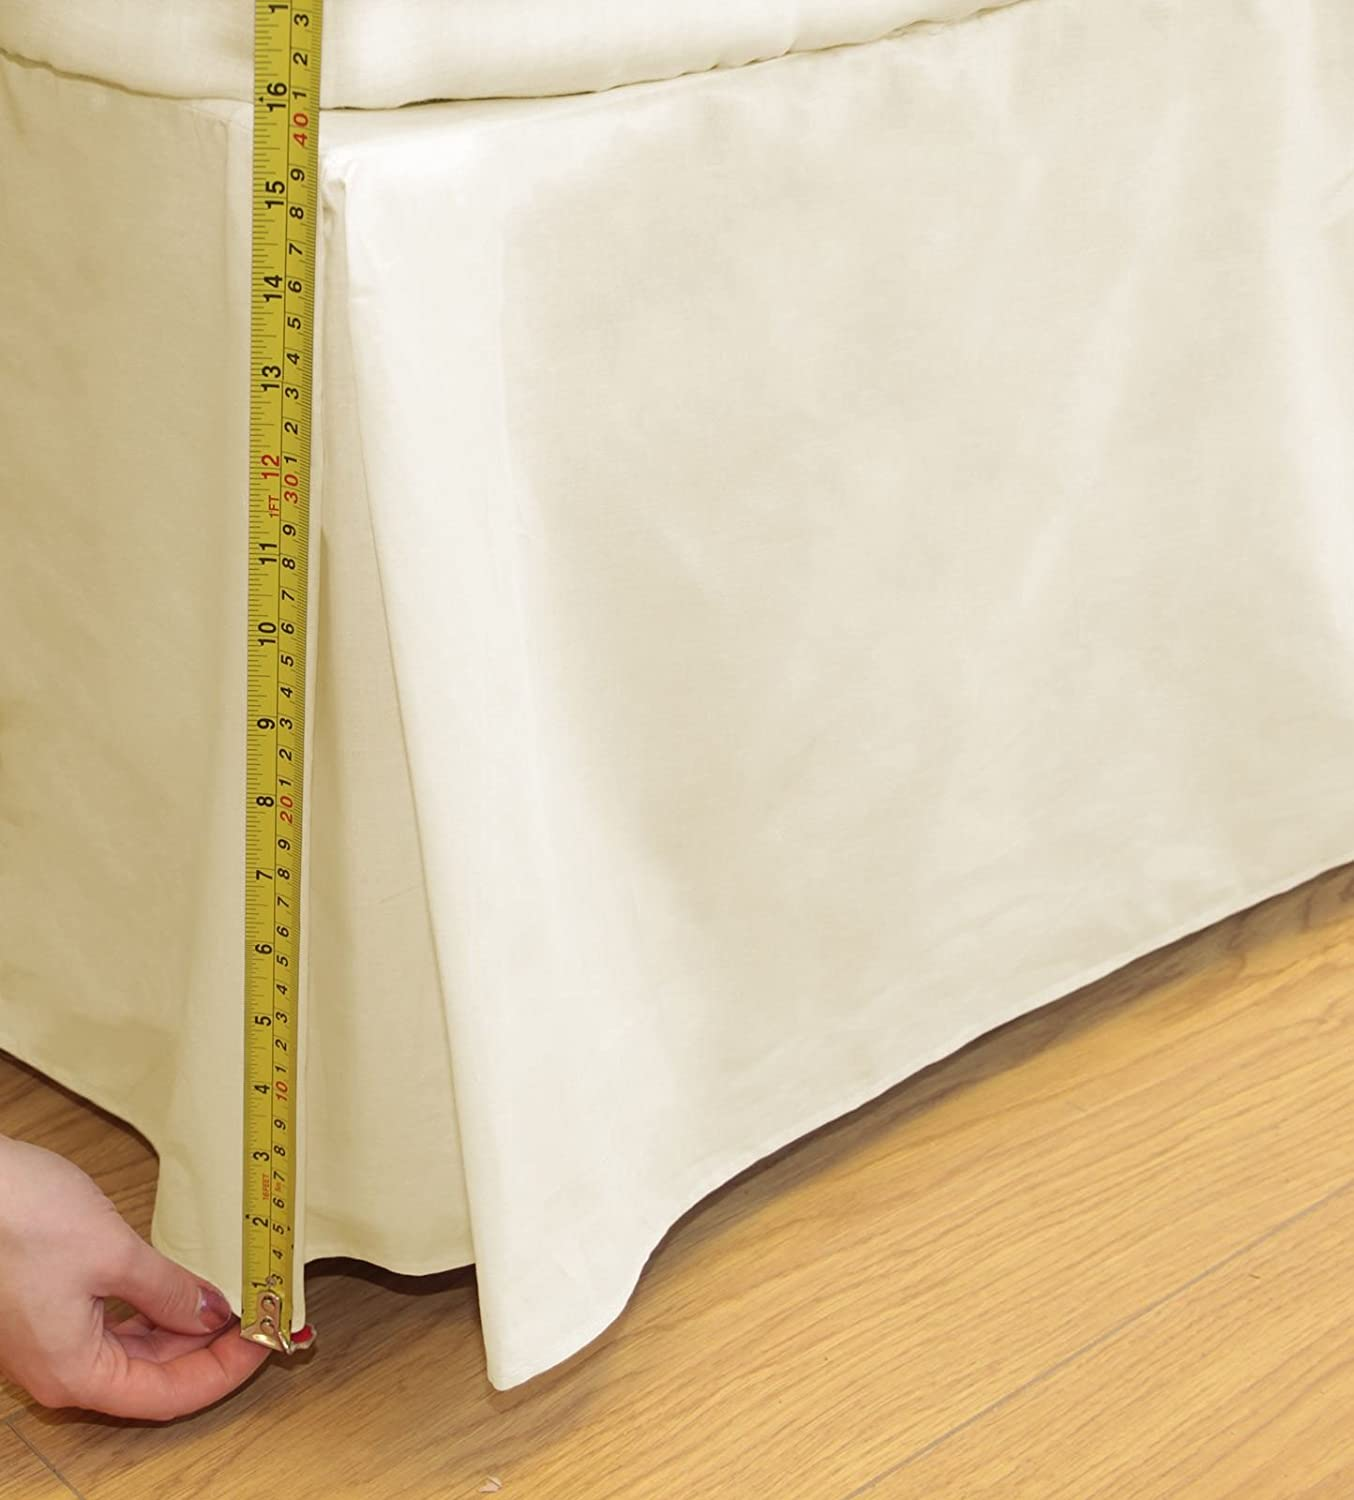 Ideal Textiles, Percale 180 Thread Count, Base Valance Sheet, Platform Valance, Cream Ivory, King Bed Size